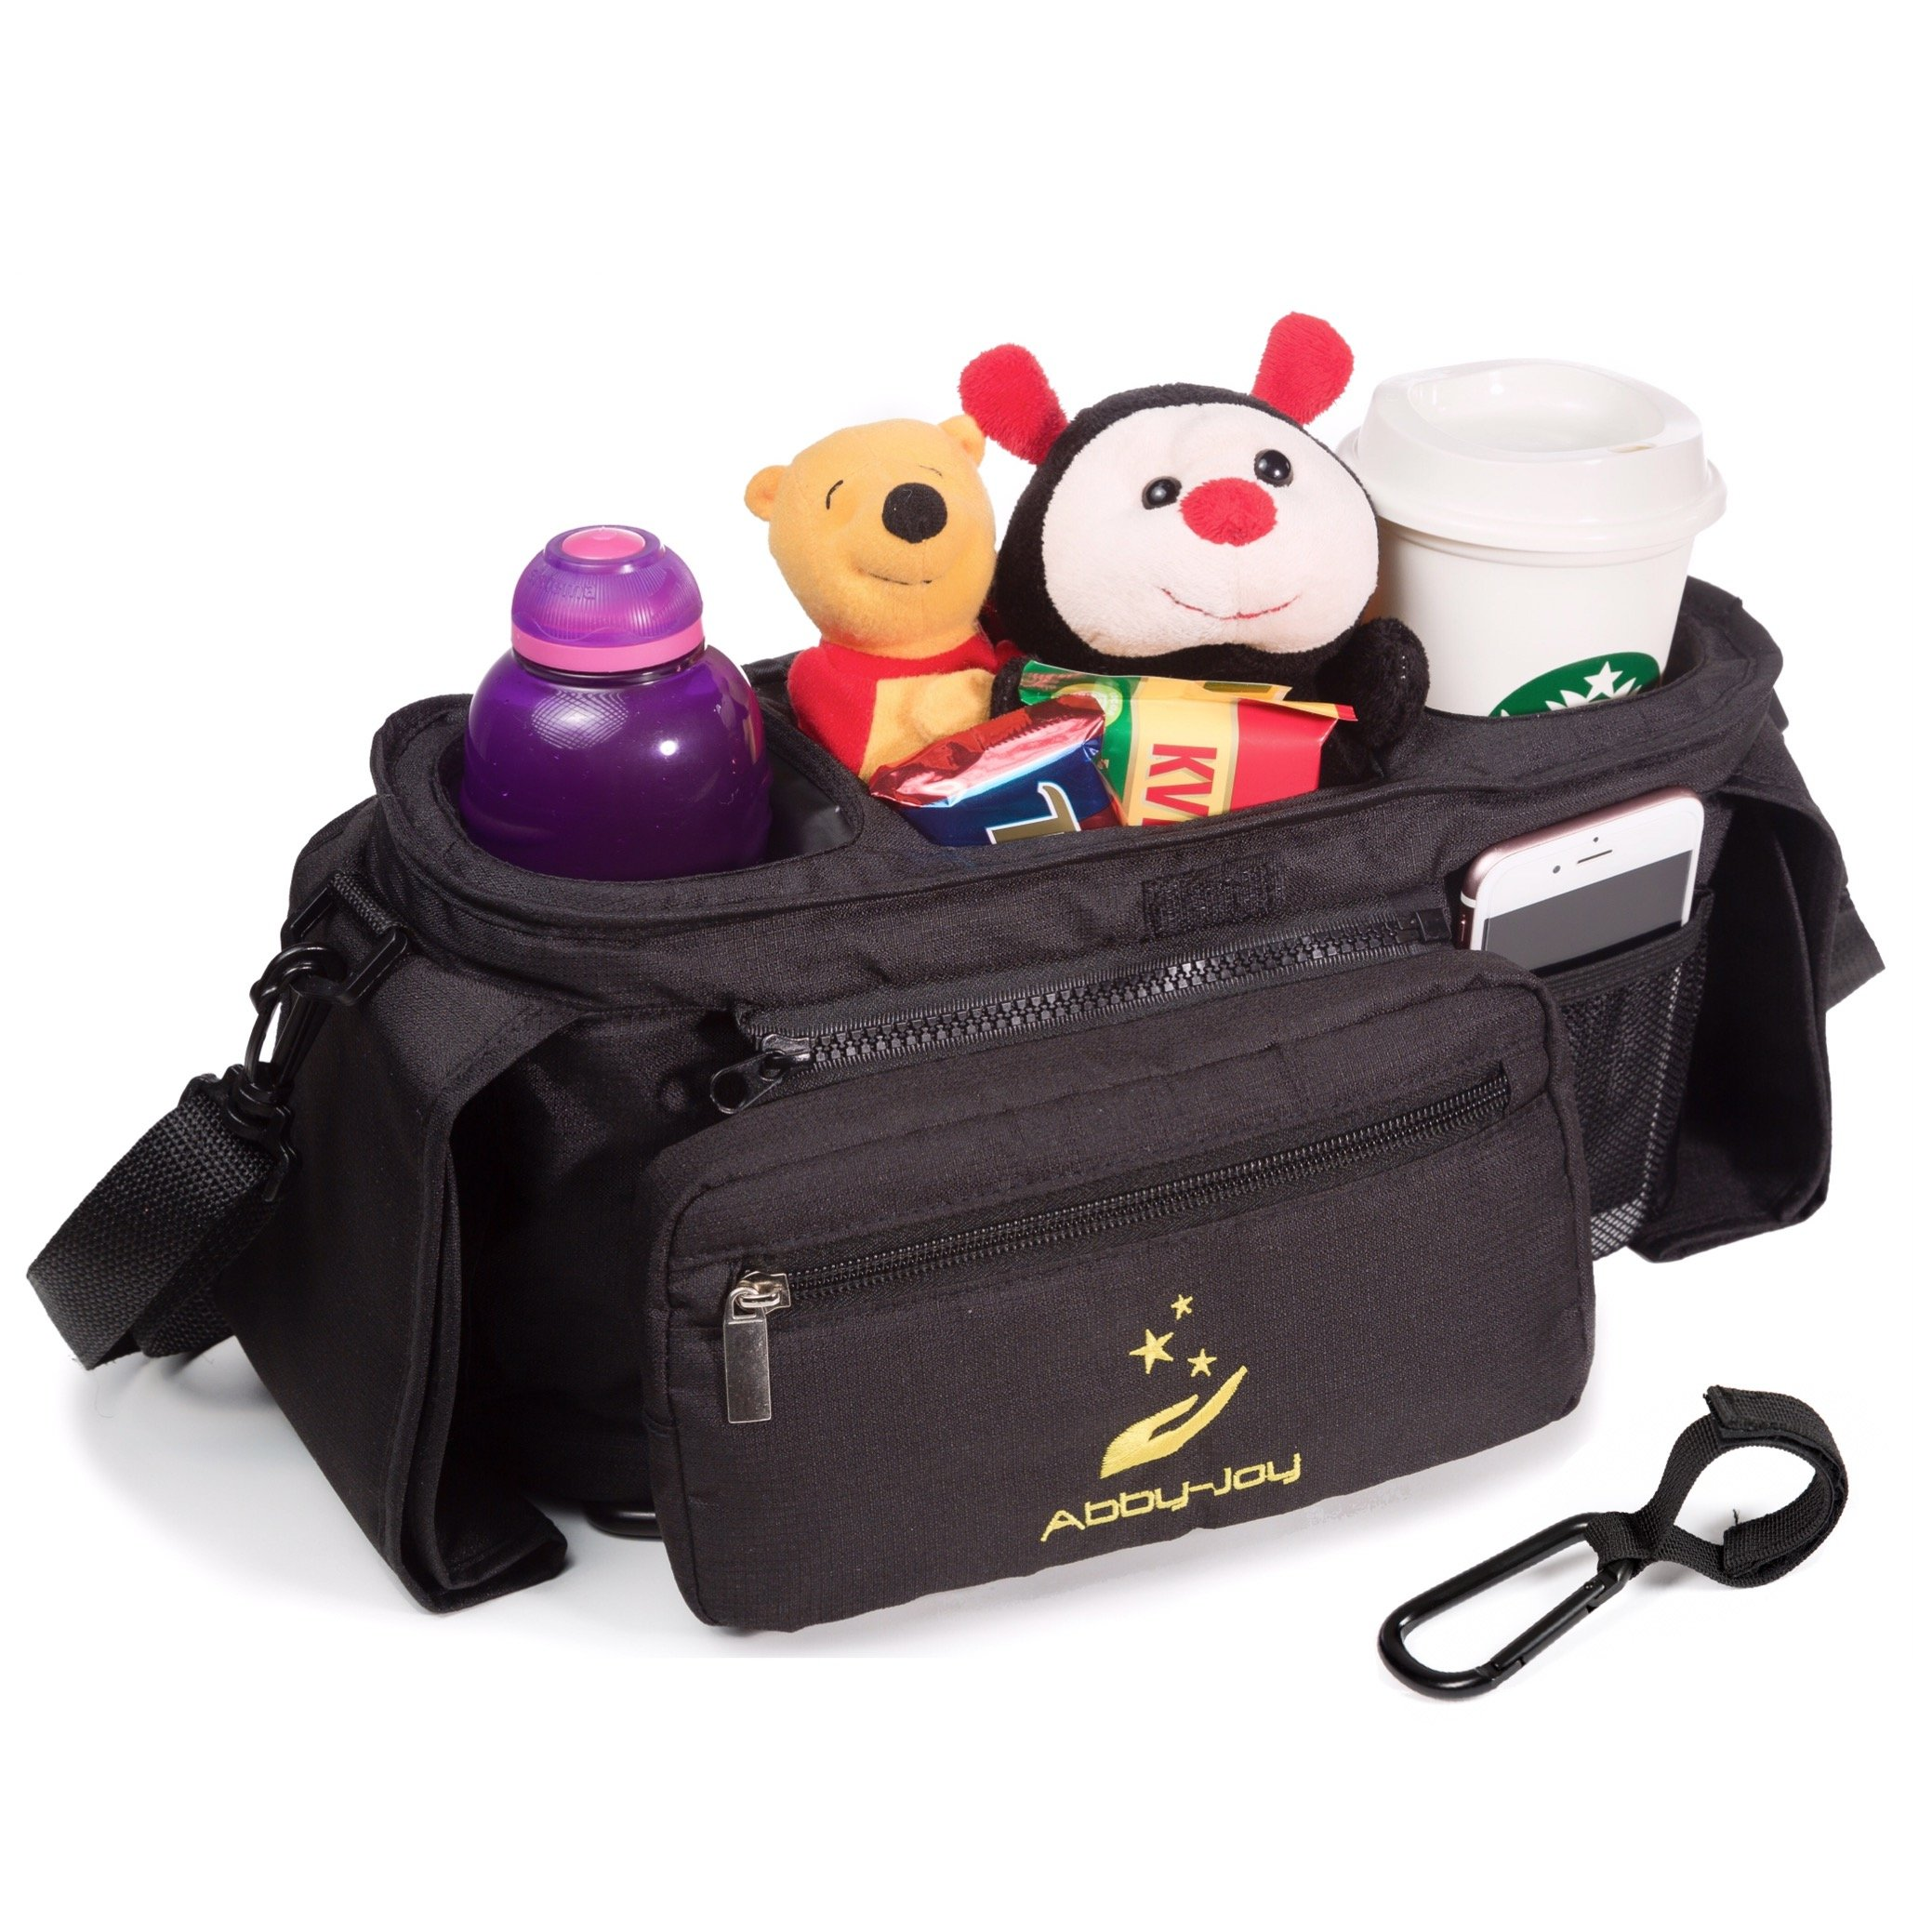 Abby-Joy Stroller Organizer Bag with Cup Holders Accessories| Including adjustable shoulder strap and one stroller Hook| Extra-large storage space for cell-phones, keys, toys, diapers